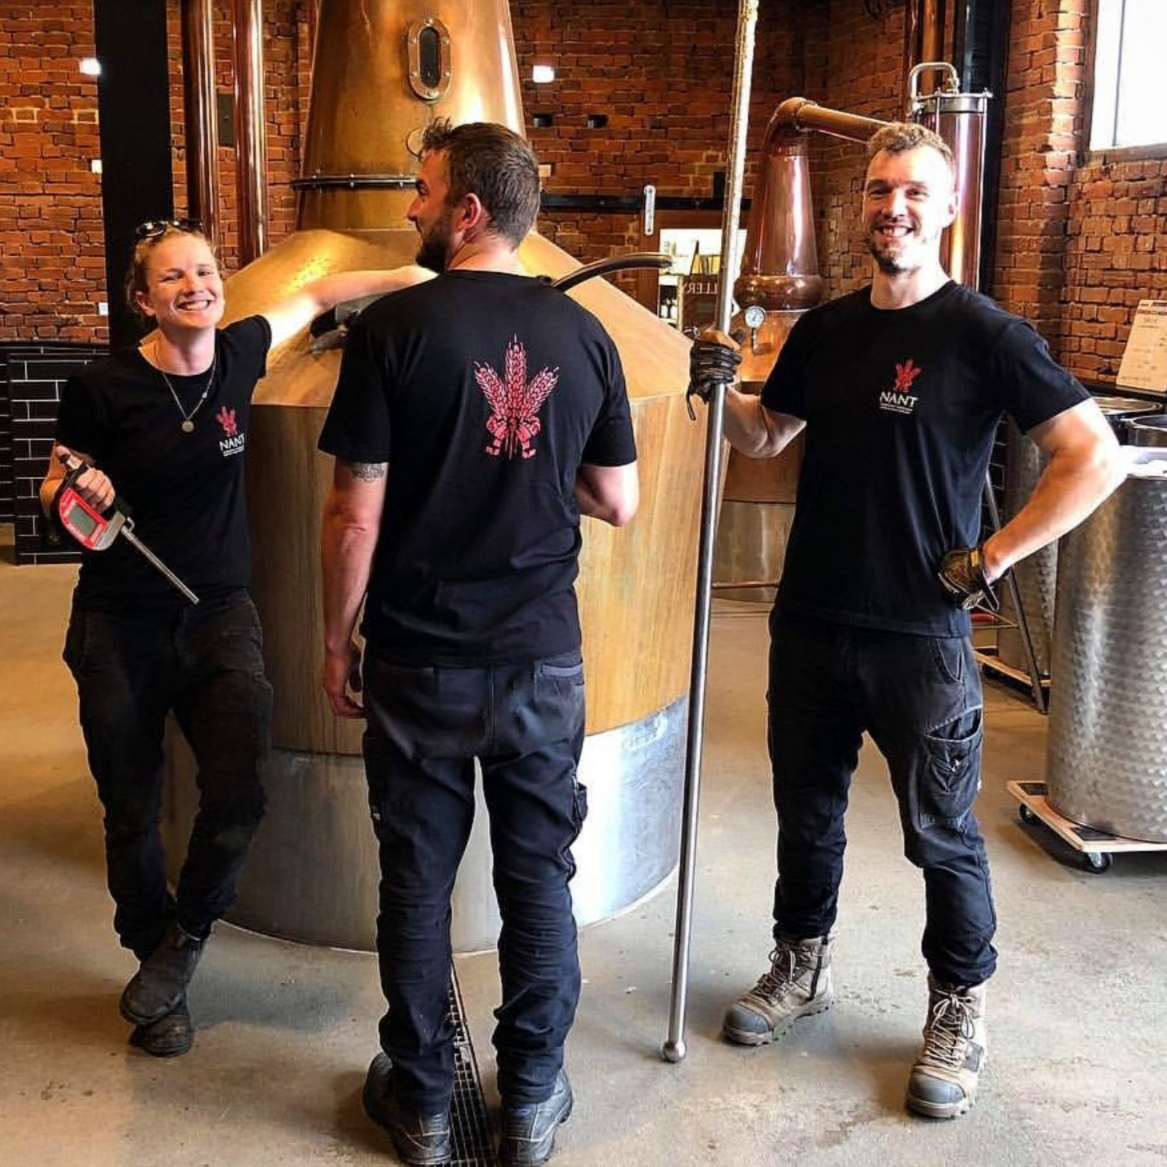 Left to right: Distillers Bec Walsh, Jack Sellers, Scott Smith